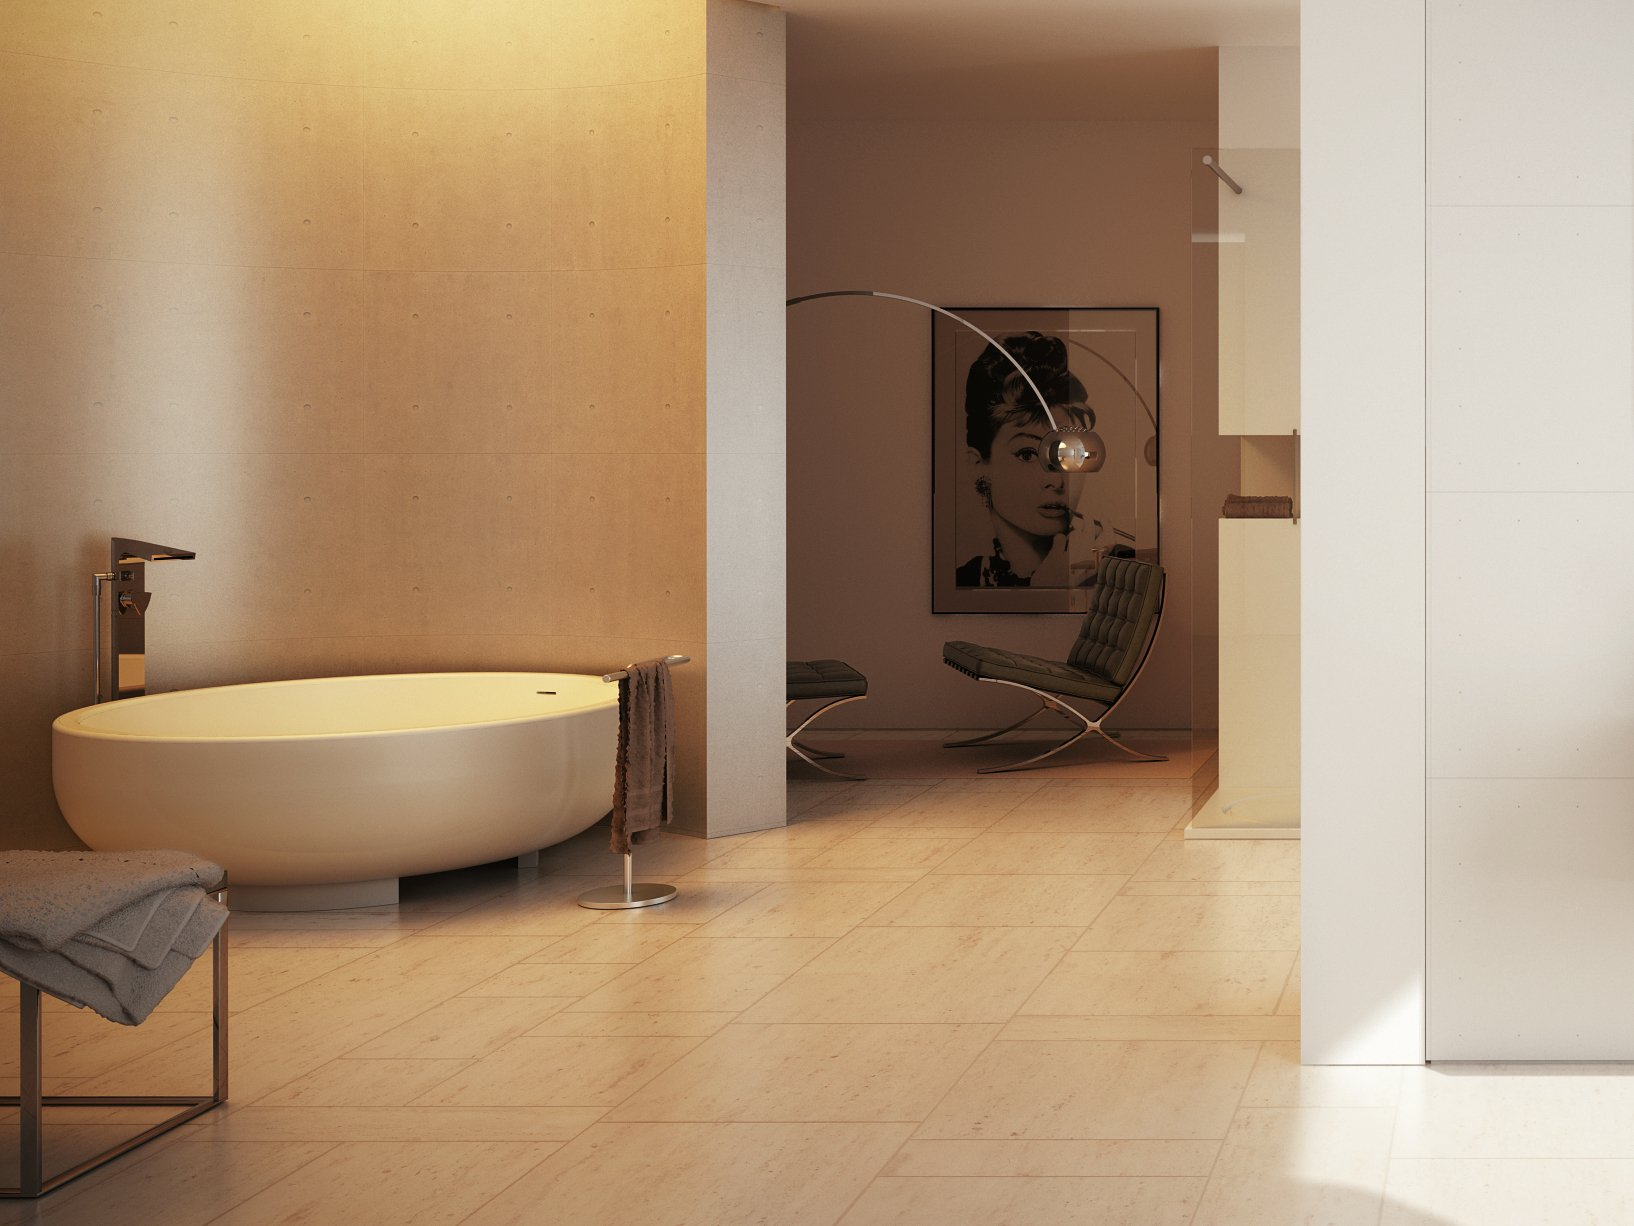 Vasca da bagno rotonda GOLD TUB by DIMASI BATHROOM by Archiplast